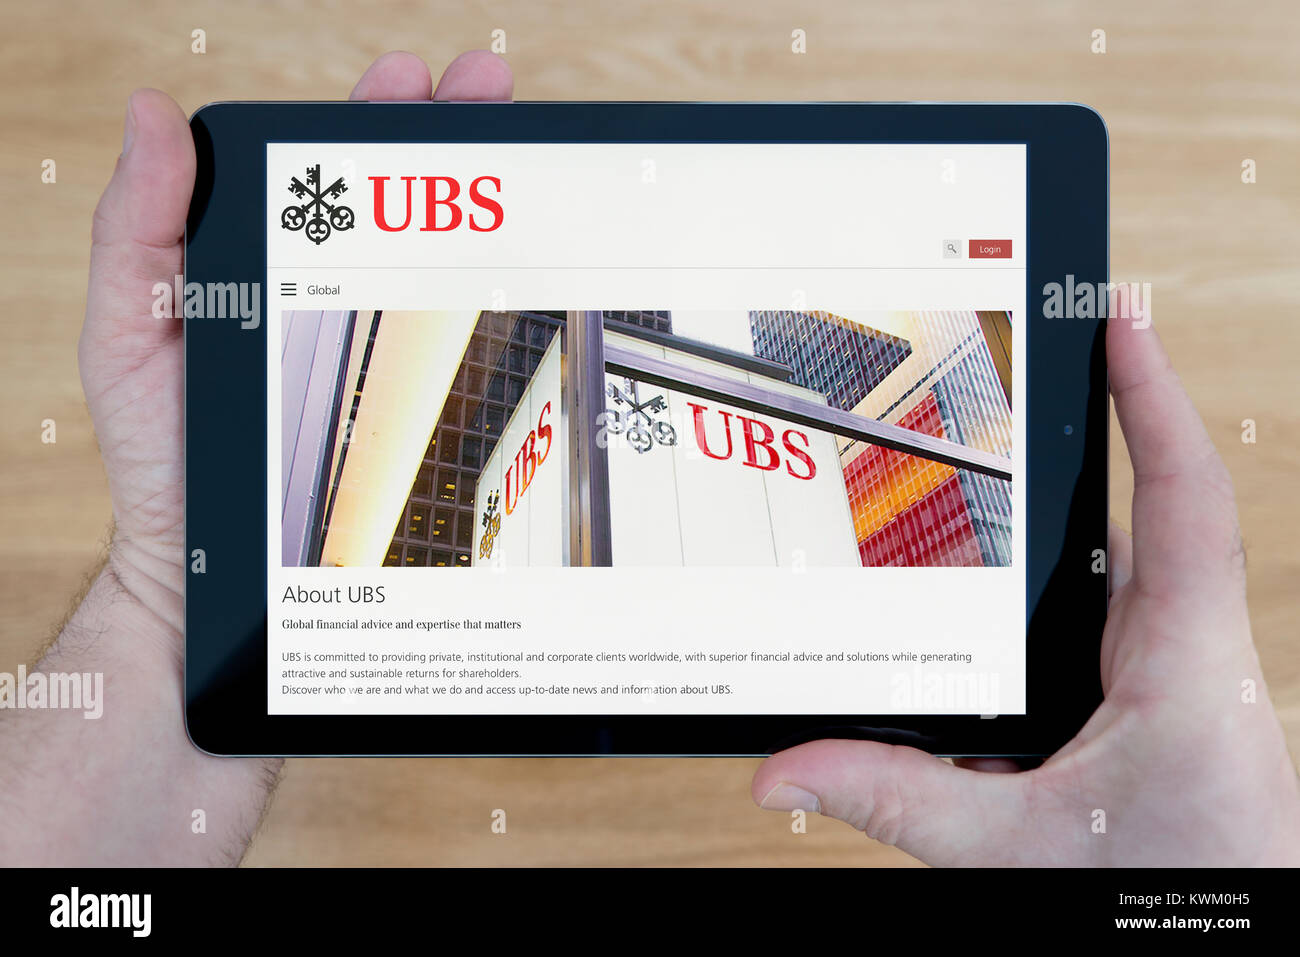 Logo swiss bank ubs stock photos logo swiss bank ubs stock a man looks at the ubs bank website on his ipad tablet device over a buycottarizona Image collections